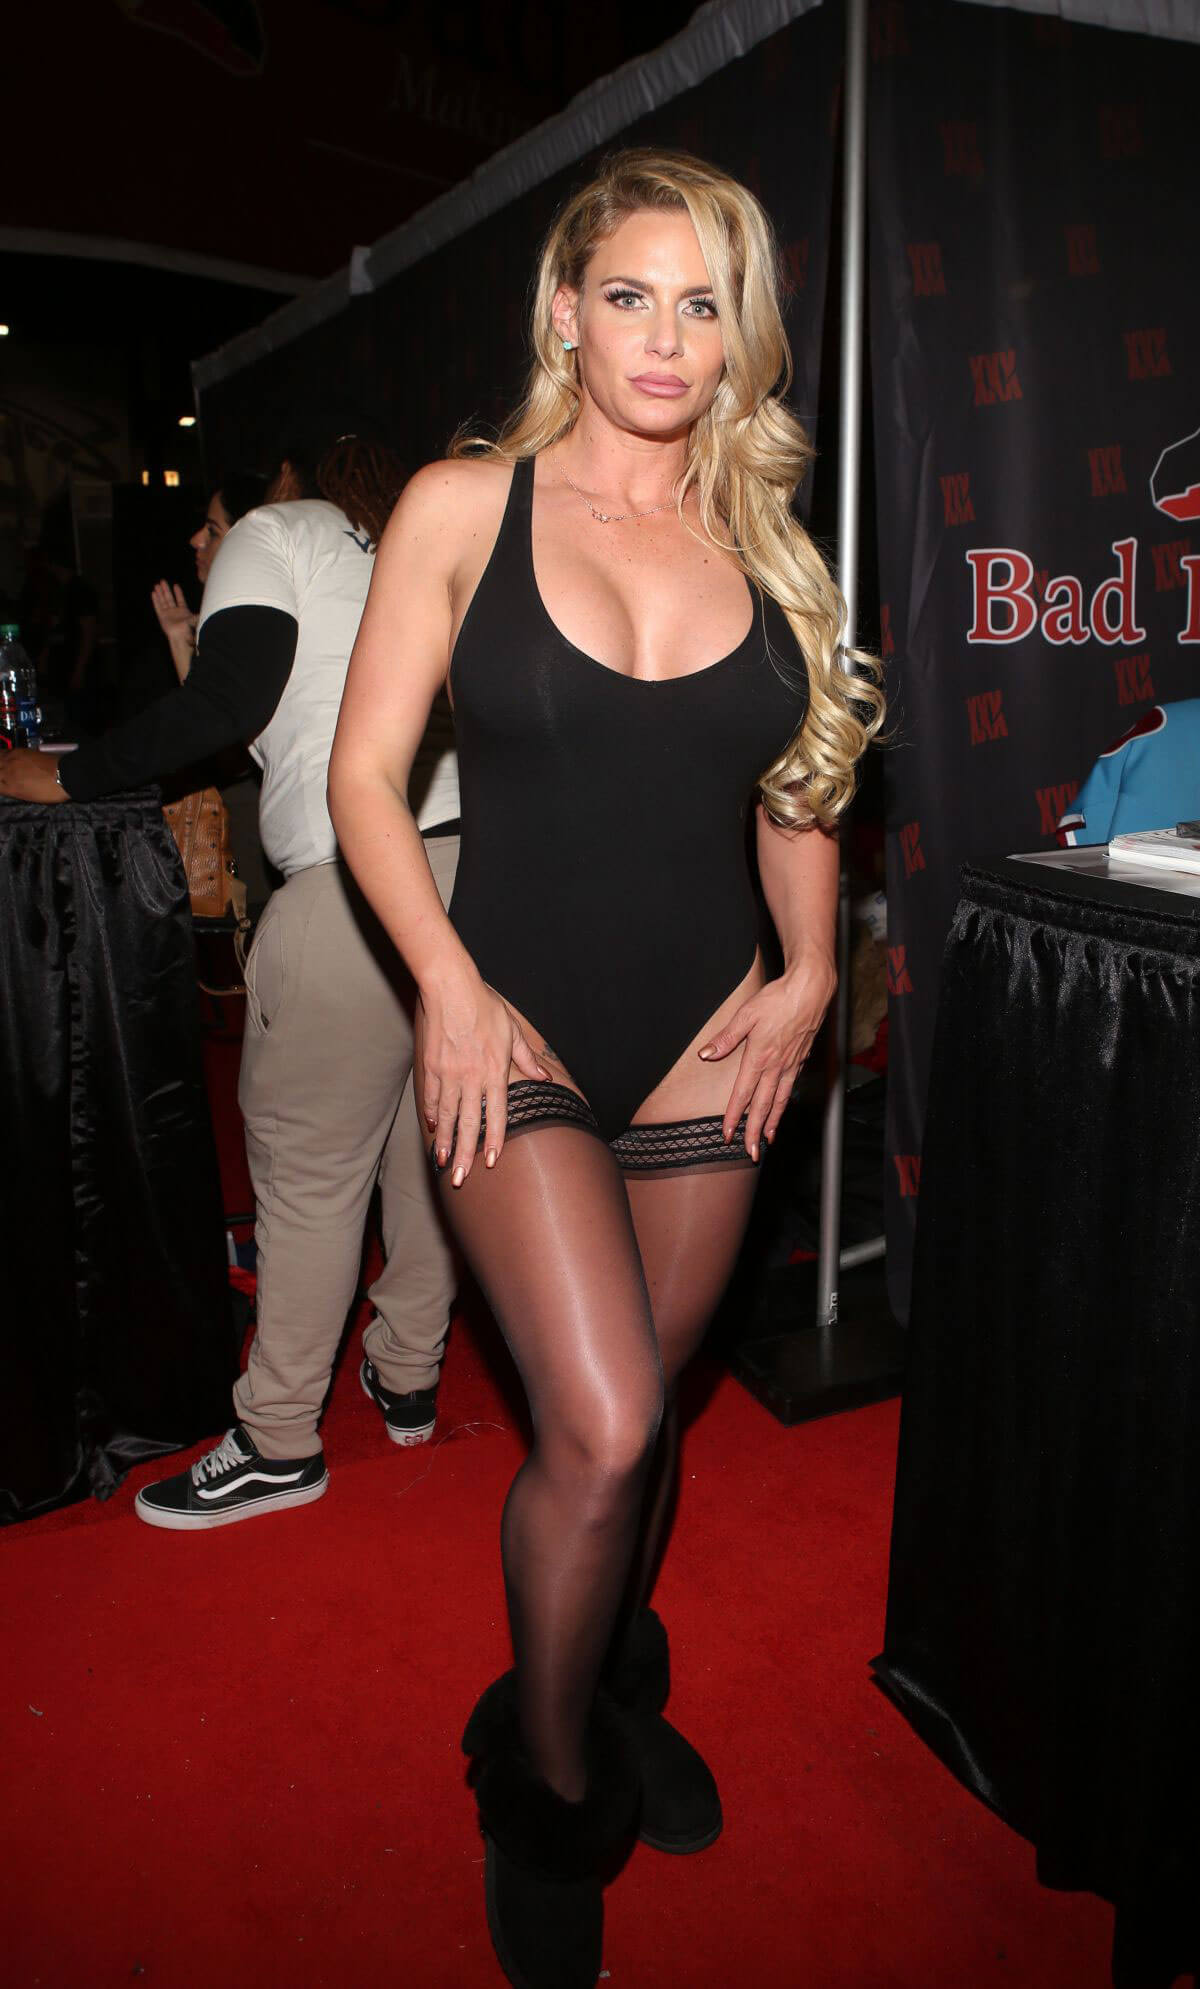 Exxxotica expo 2011 - 2 part 2